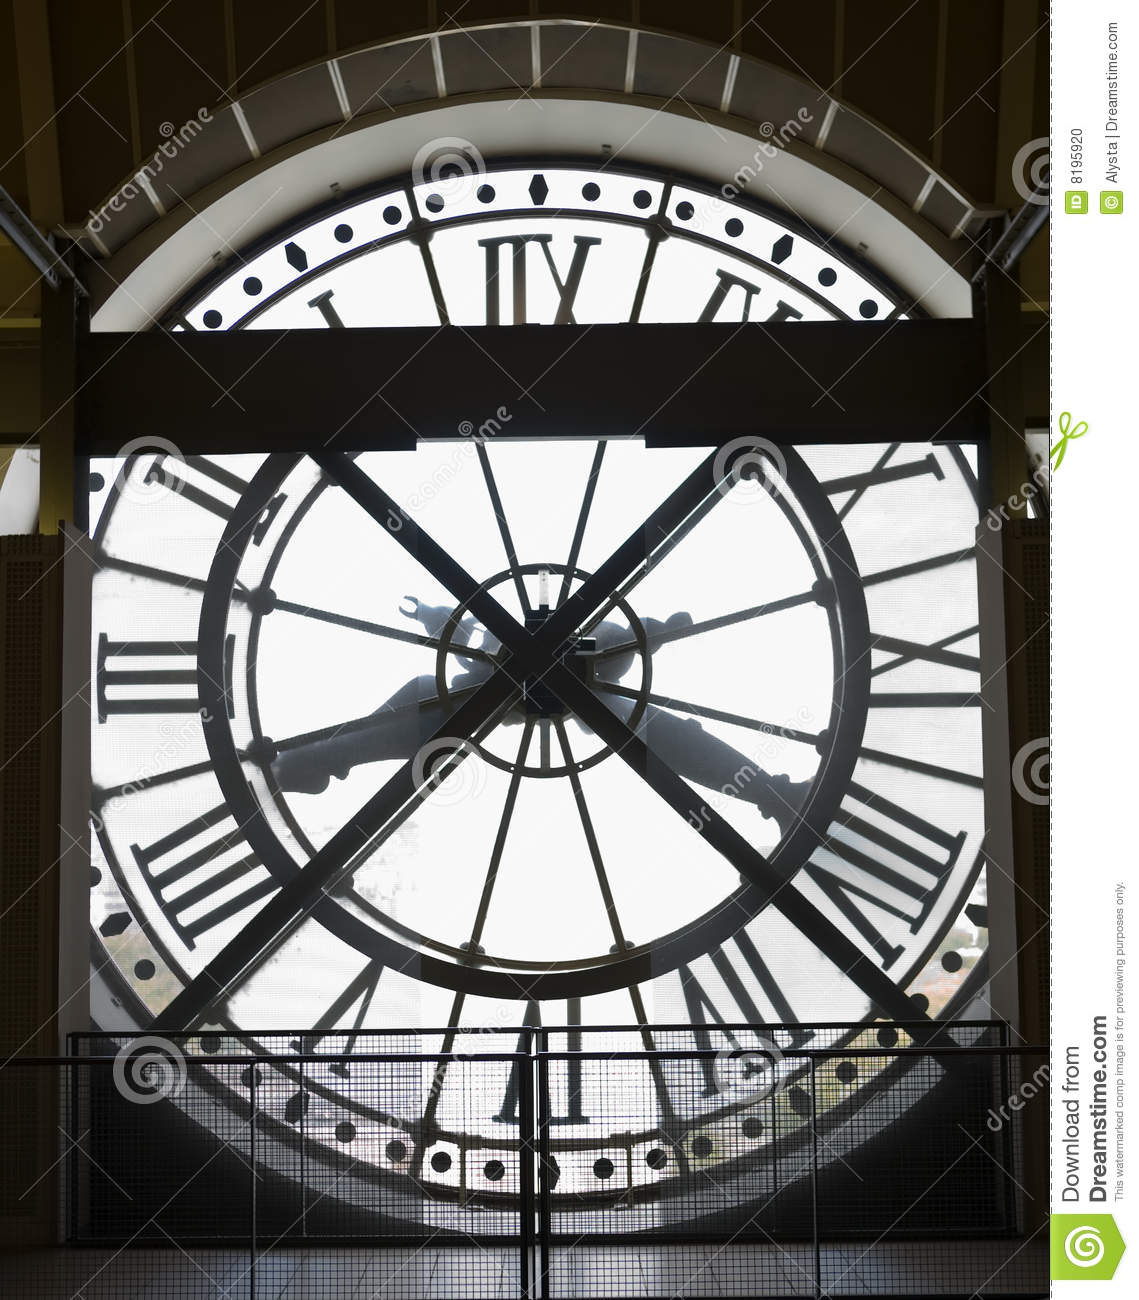 Musee D'Orsay Museum Clock Stock Photo.